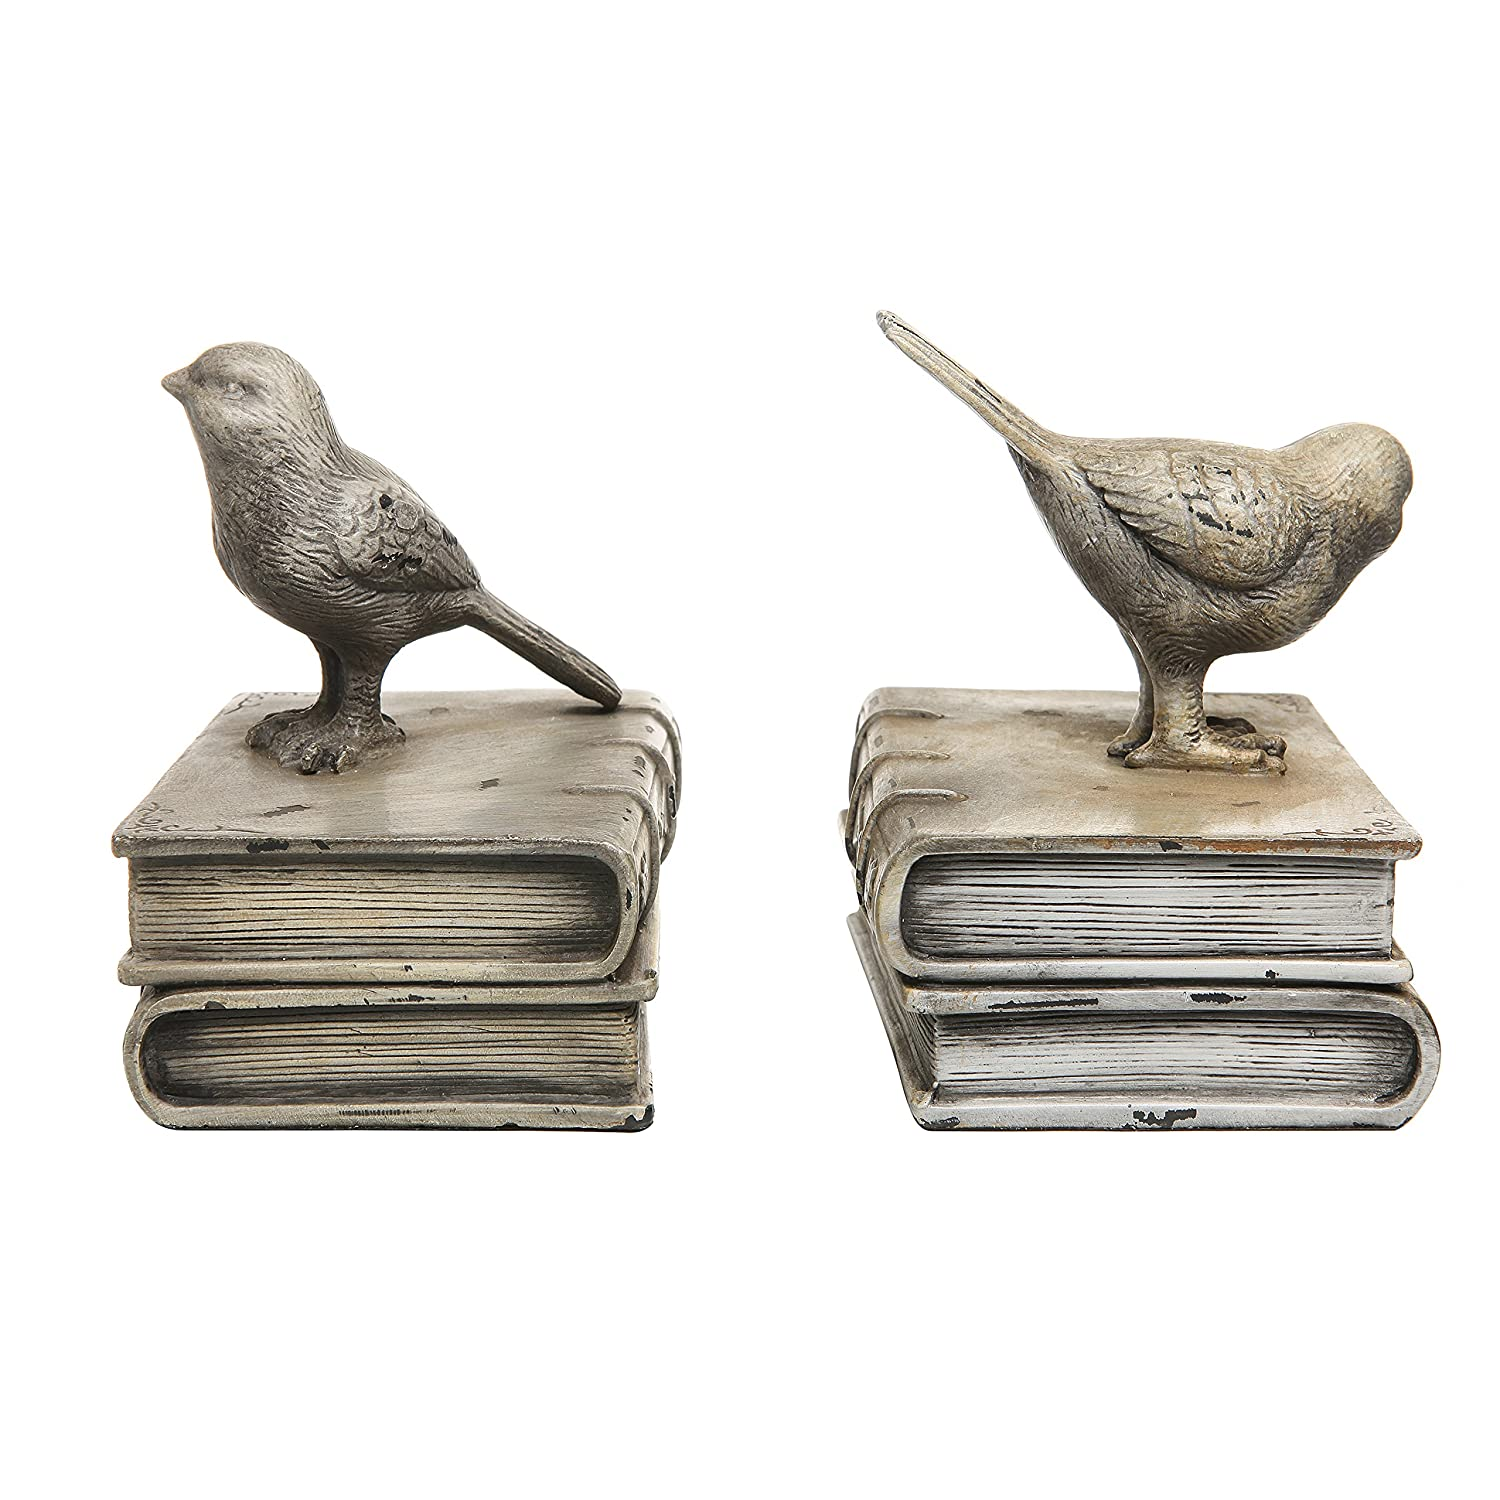 Amazon MyGift Vintage Style Decorative Birds Books Design Ceramic Bookshelf Bookends Paper Weights Home Kitchen